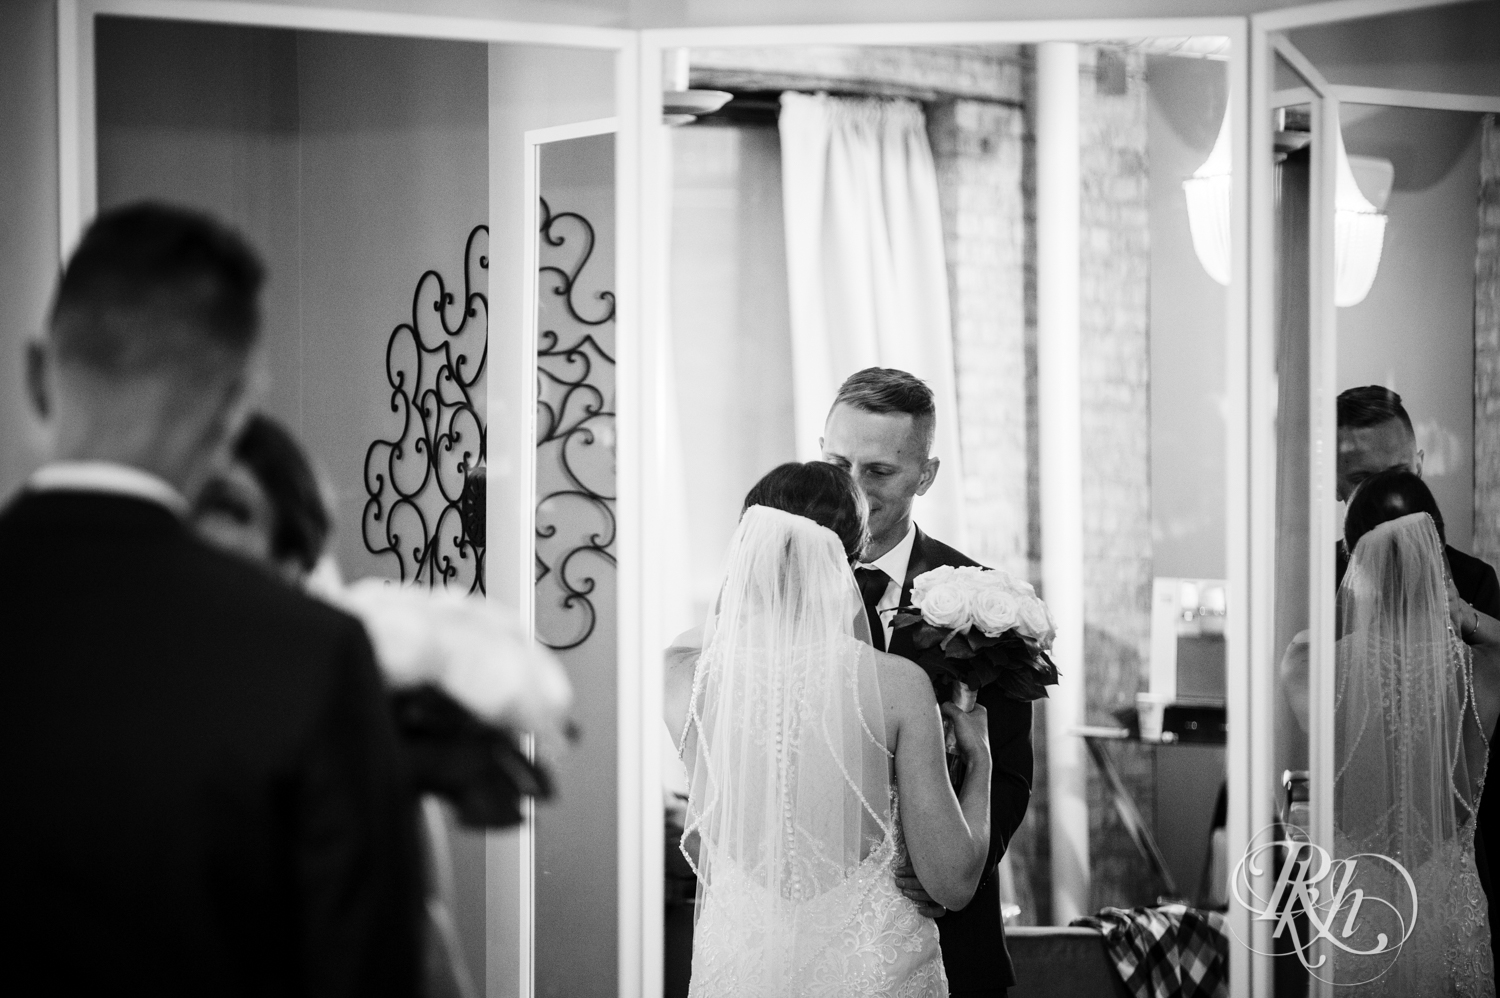 Jillian & Jared - Minnesota Wedding Photography - Lumber Exchange Event Center - RKH Images - Blog (47 of 87).jpg